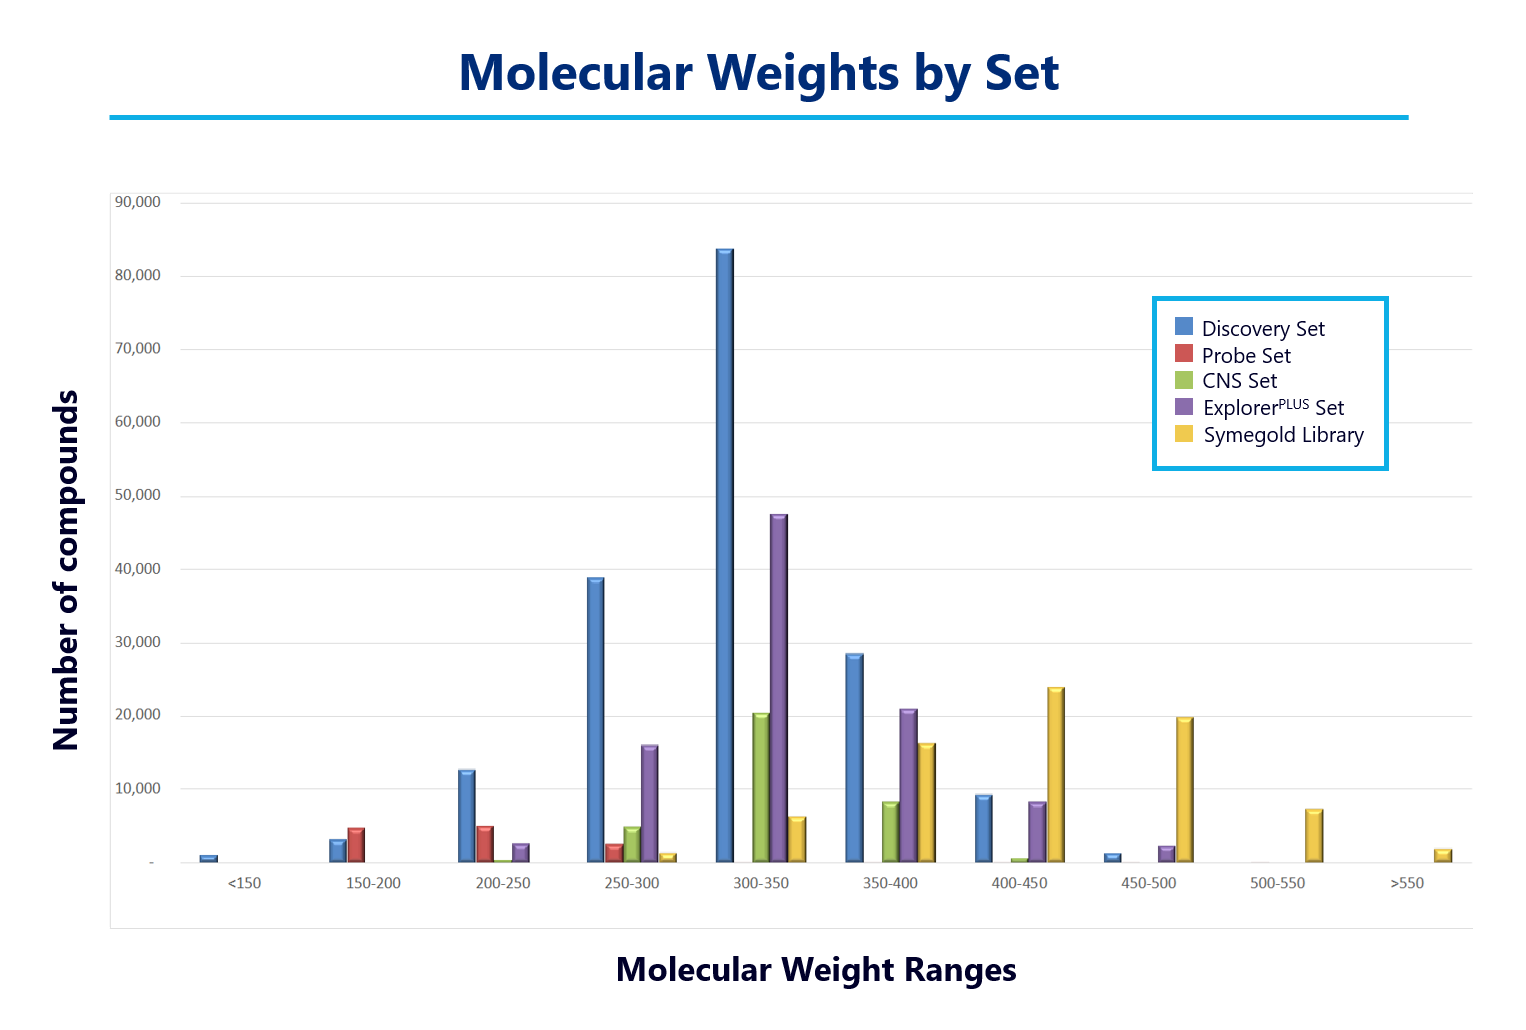 Molecular weight ranges of the Axxam compound collections